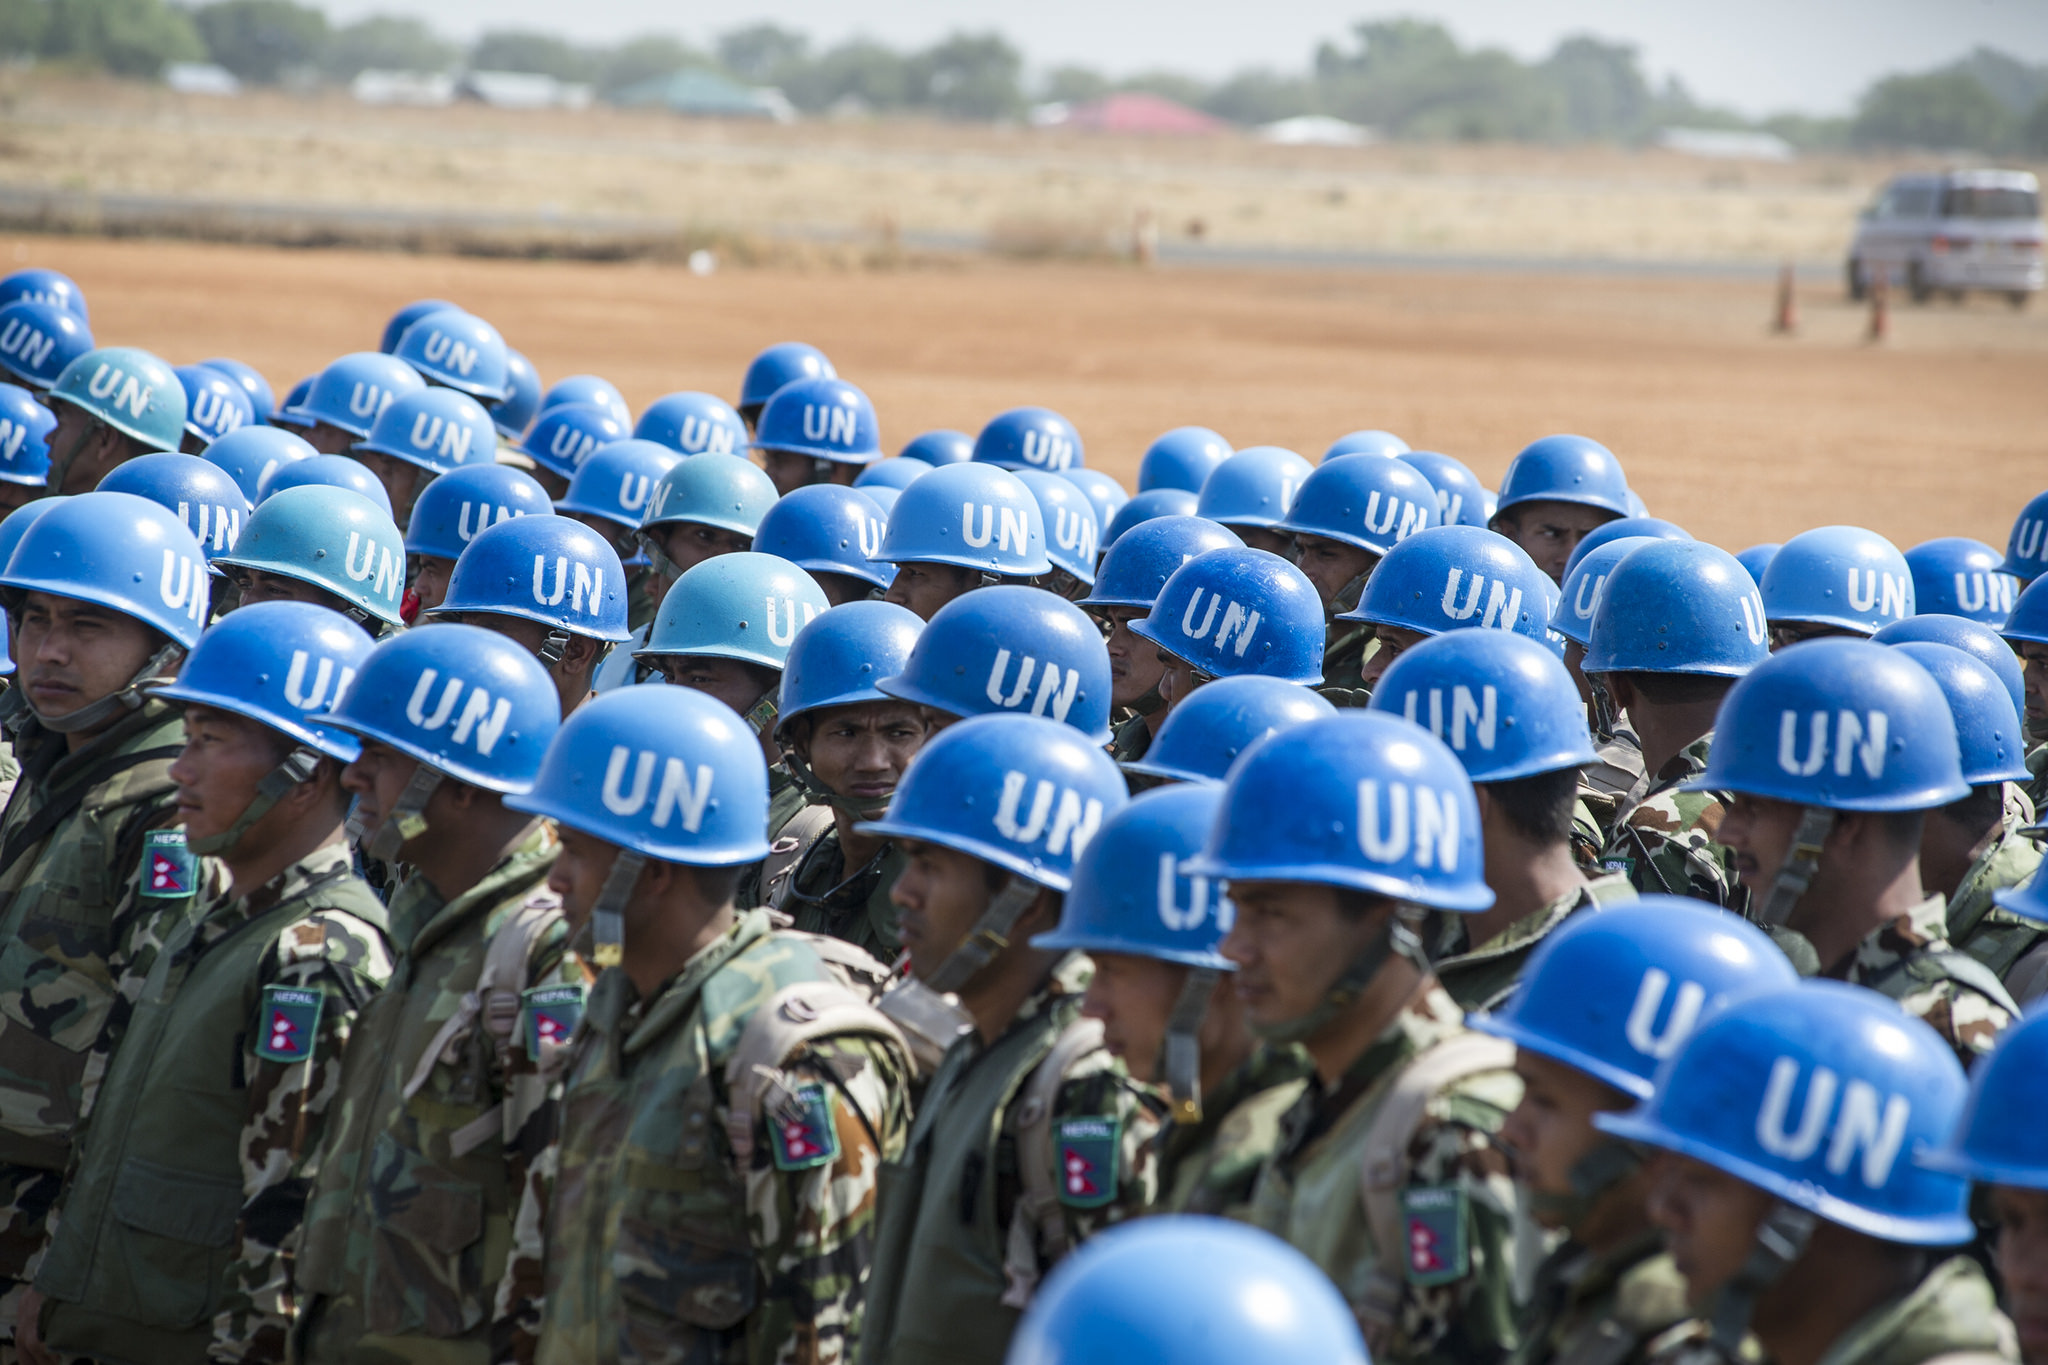 Contingent of Nepalese Peacekeepers arrive in Juba, South Sudan. Photo source: United Nations Photo via Flickr Creative Commons